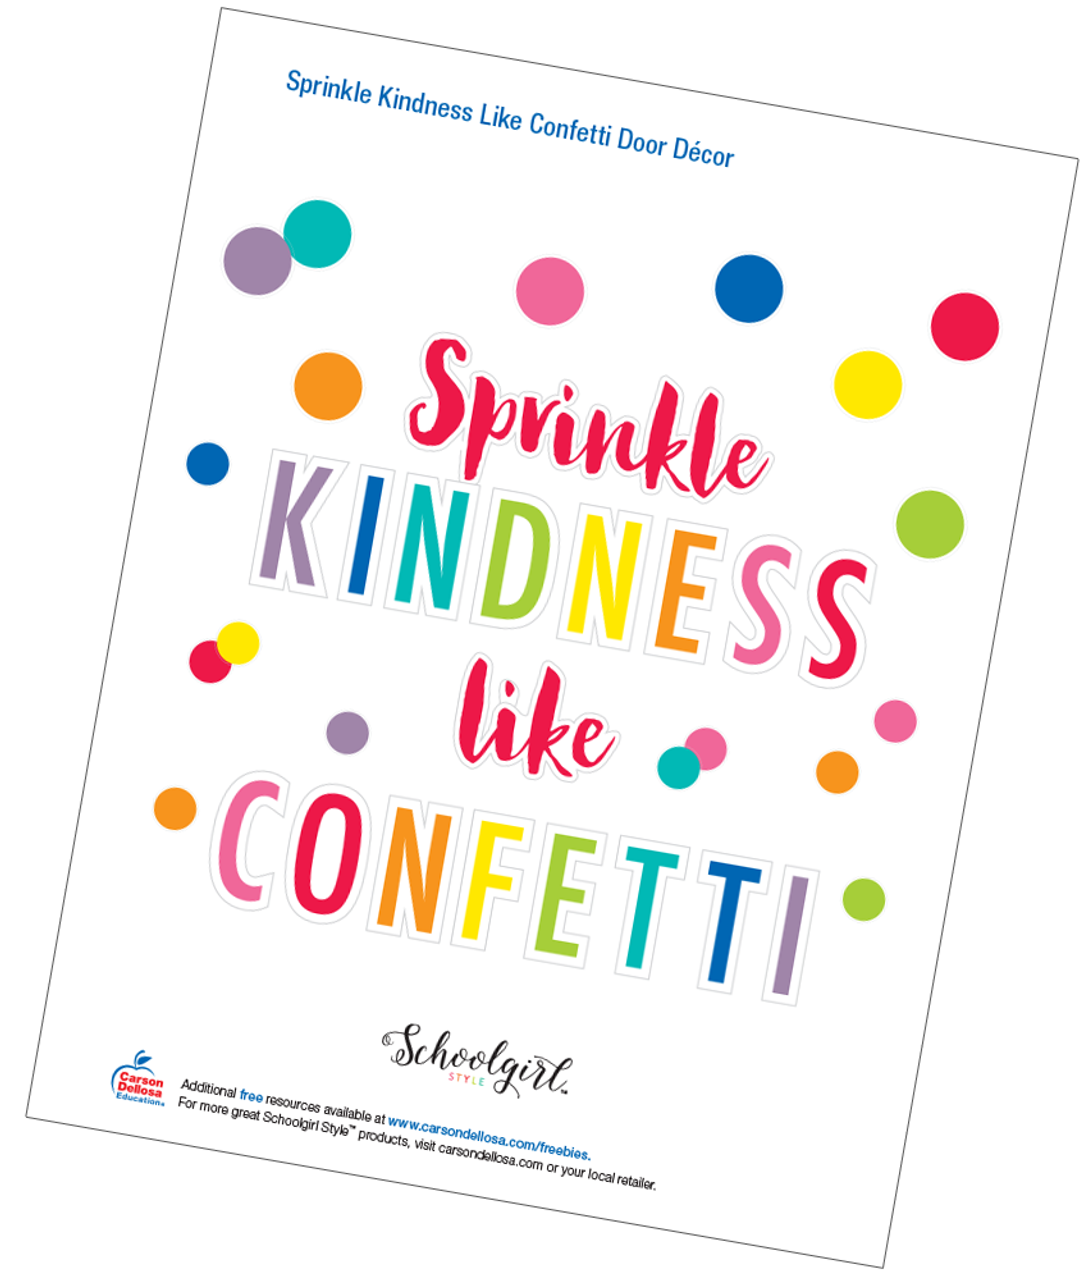 graphic regarding Free Printable Decor identify Schoolgirl Style and design: Sprinkle Kindness Such as Confetti Doorway Décor